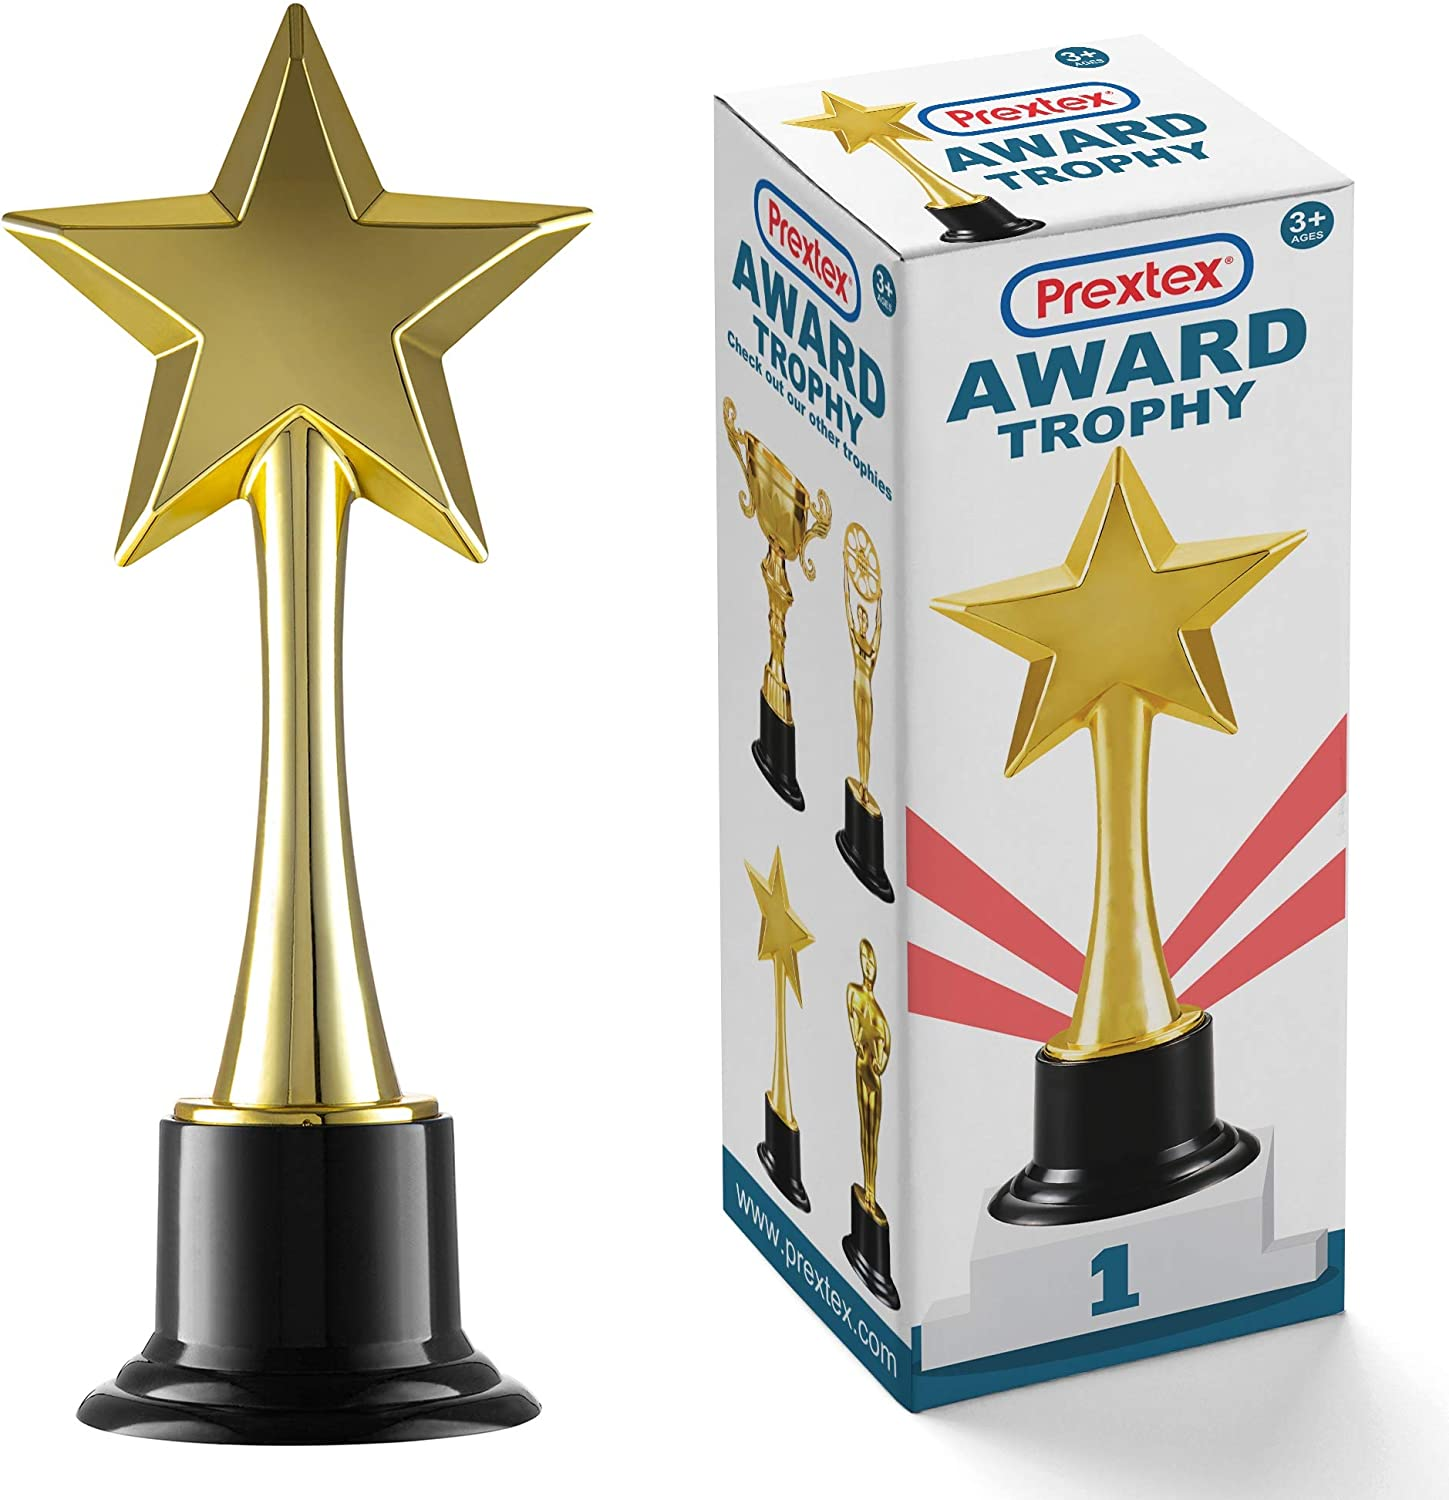 Prextex 10-Inch Gold Star Award Trophy for Trophy Awards and Party Celebrations, Award Ceremony and Appreciation Gift